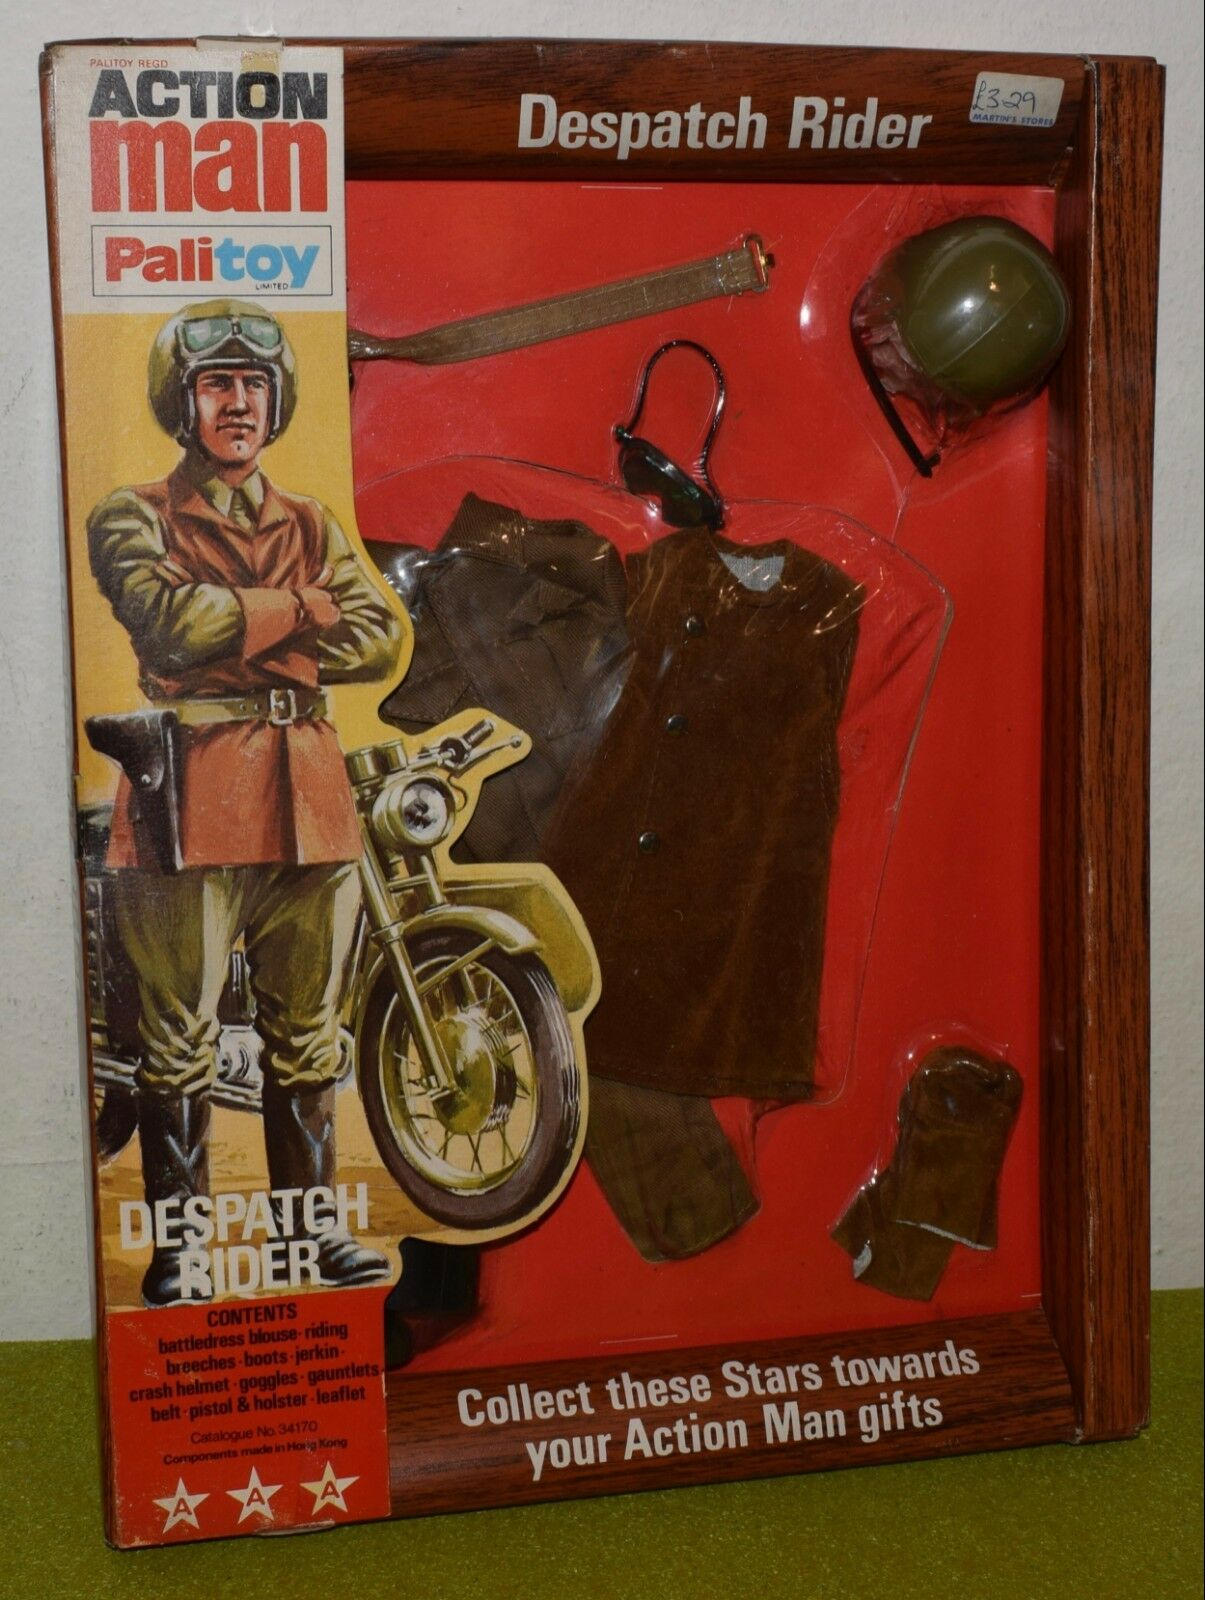 ORIGINAL VINTAGE ACTION MAN CARDED PALITOY DESPATCH RIDER